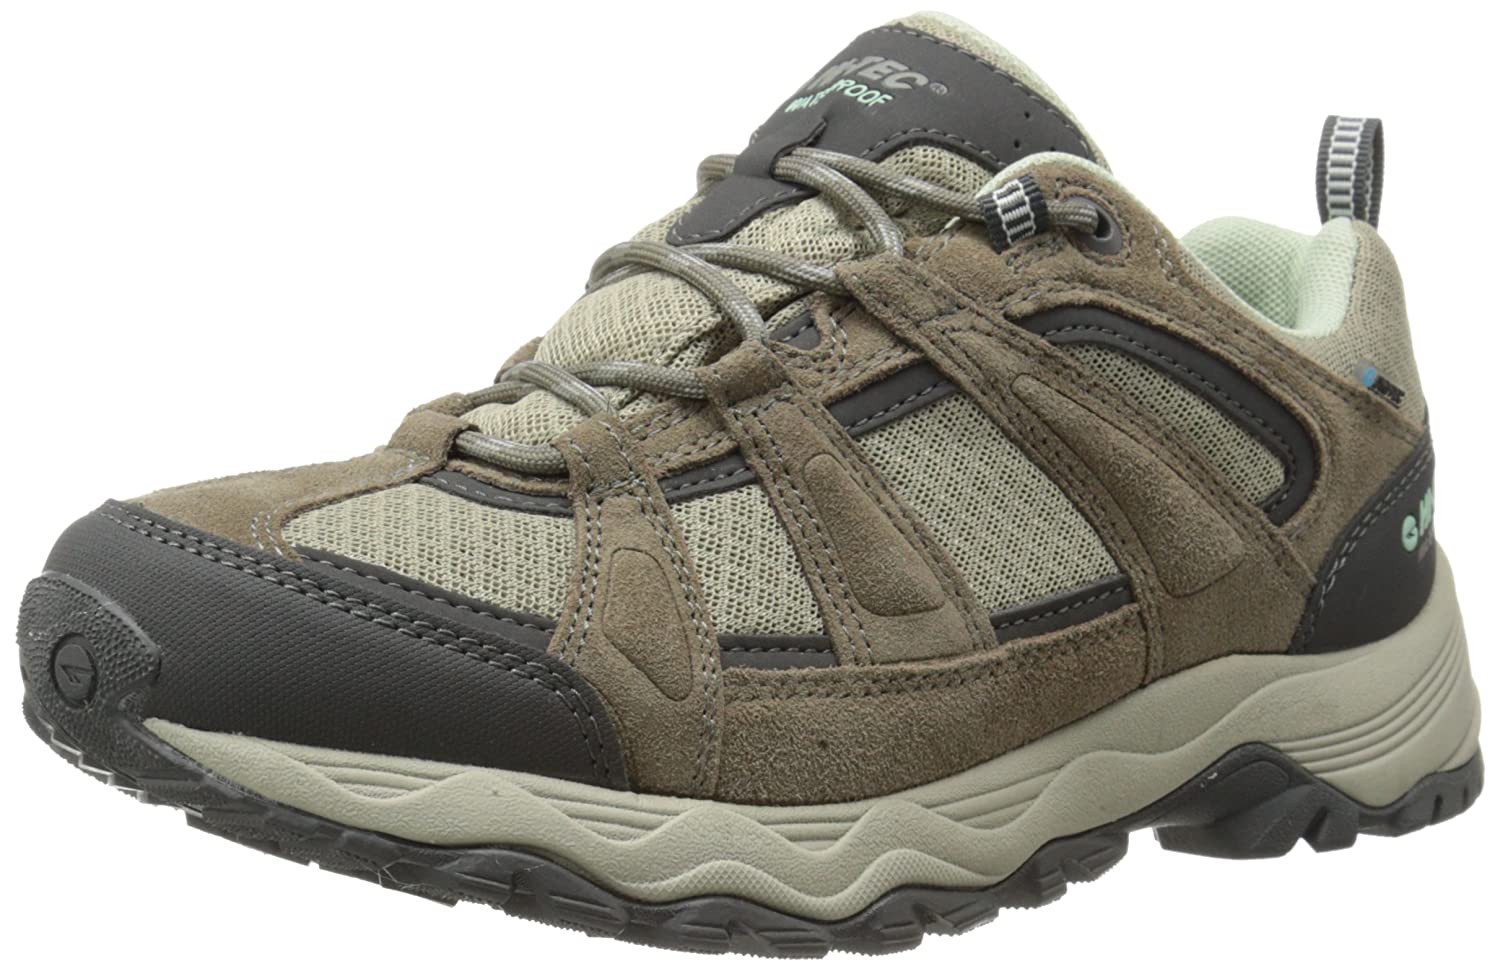 Hi-Tec Women's Perpetua Low Waterproof Hiking Shoe B00LIP786K 8 B(M) US|Taupe/Mint